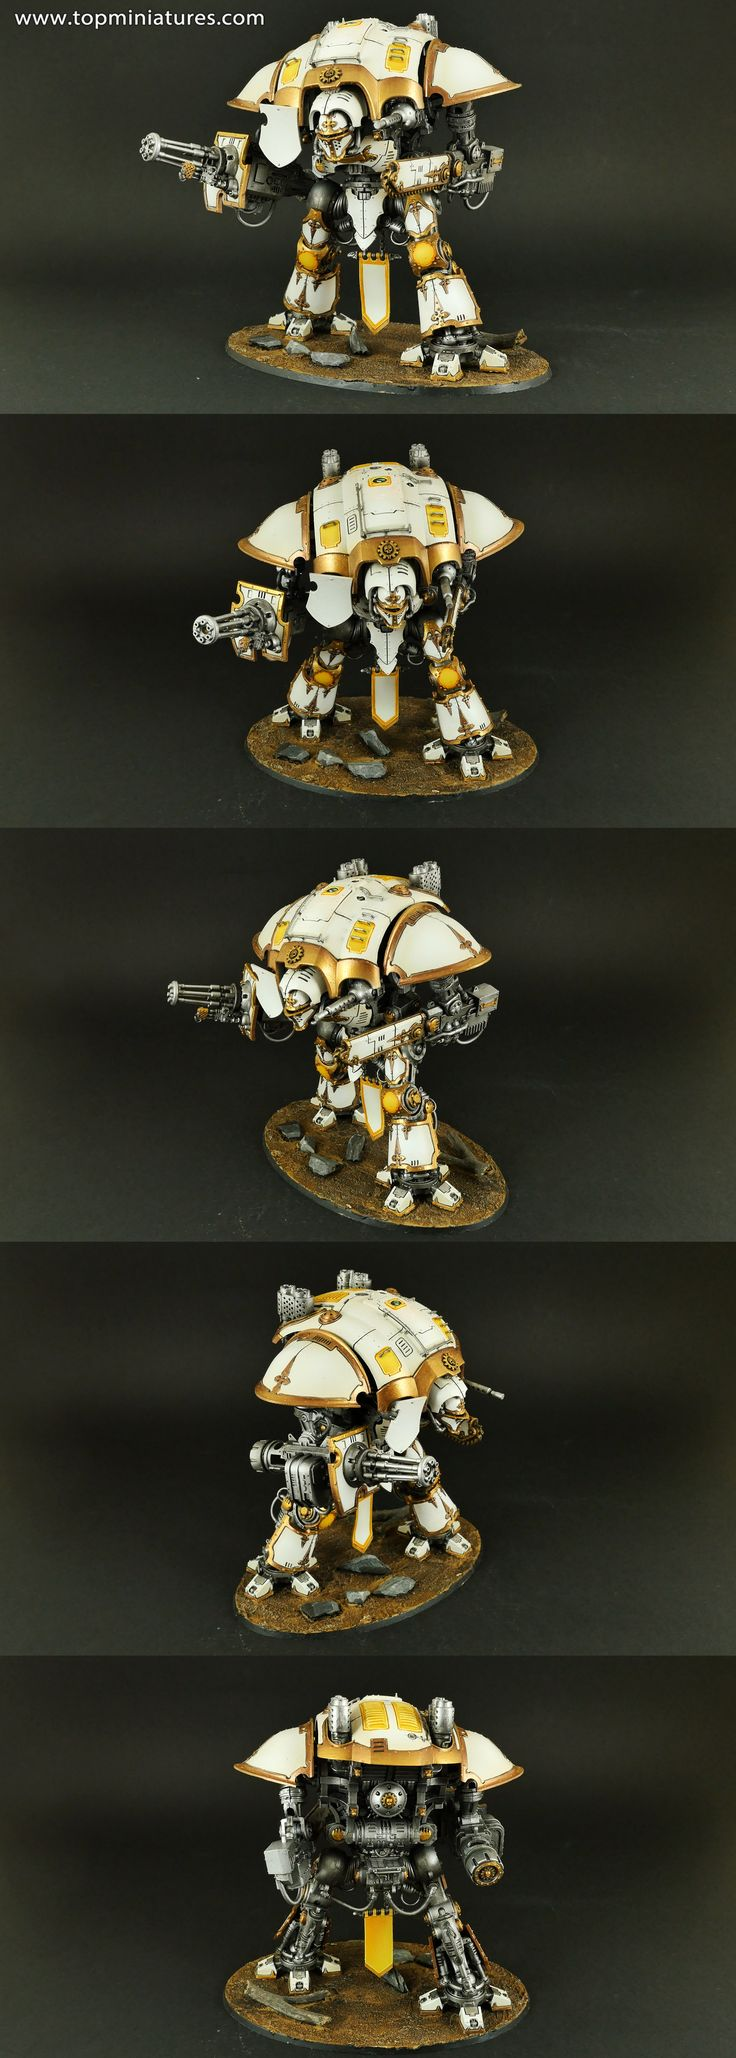 Warhammer 40k white imperial knight